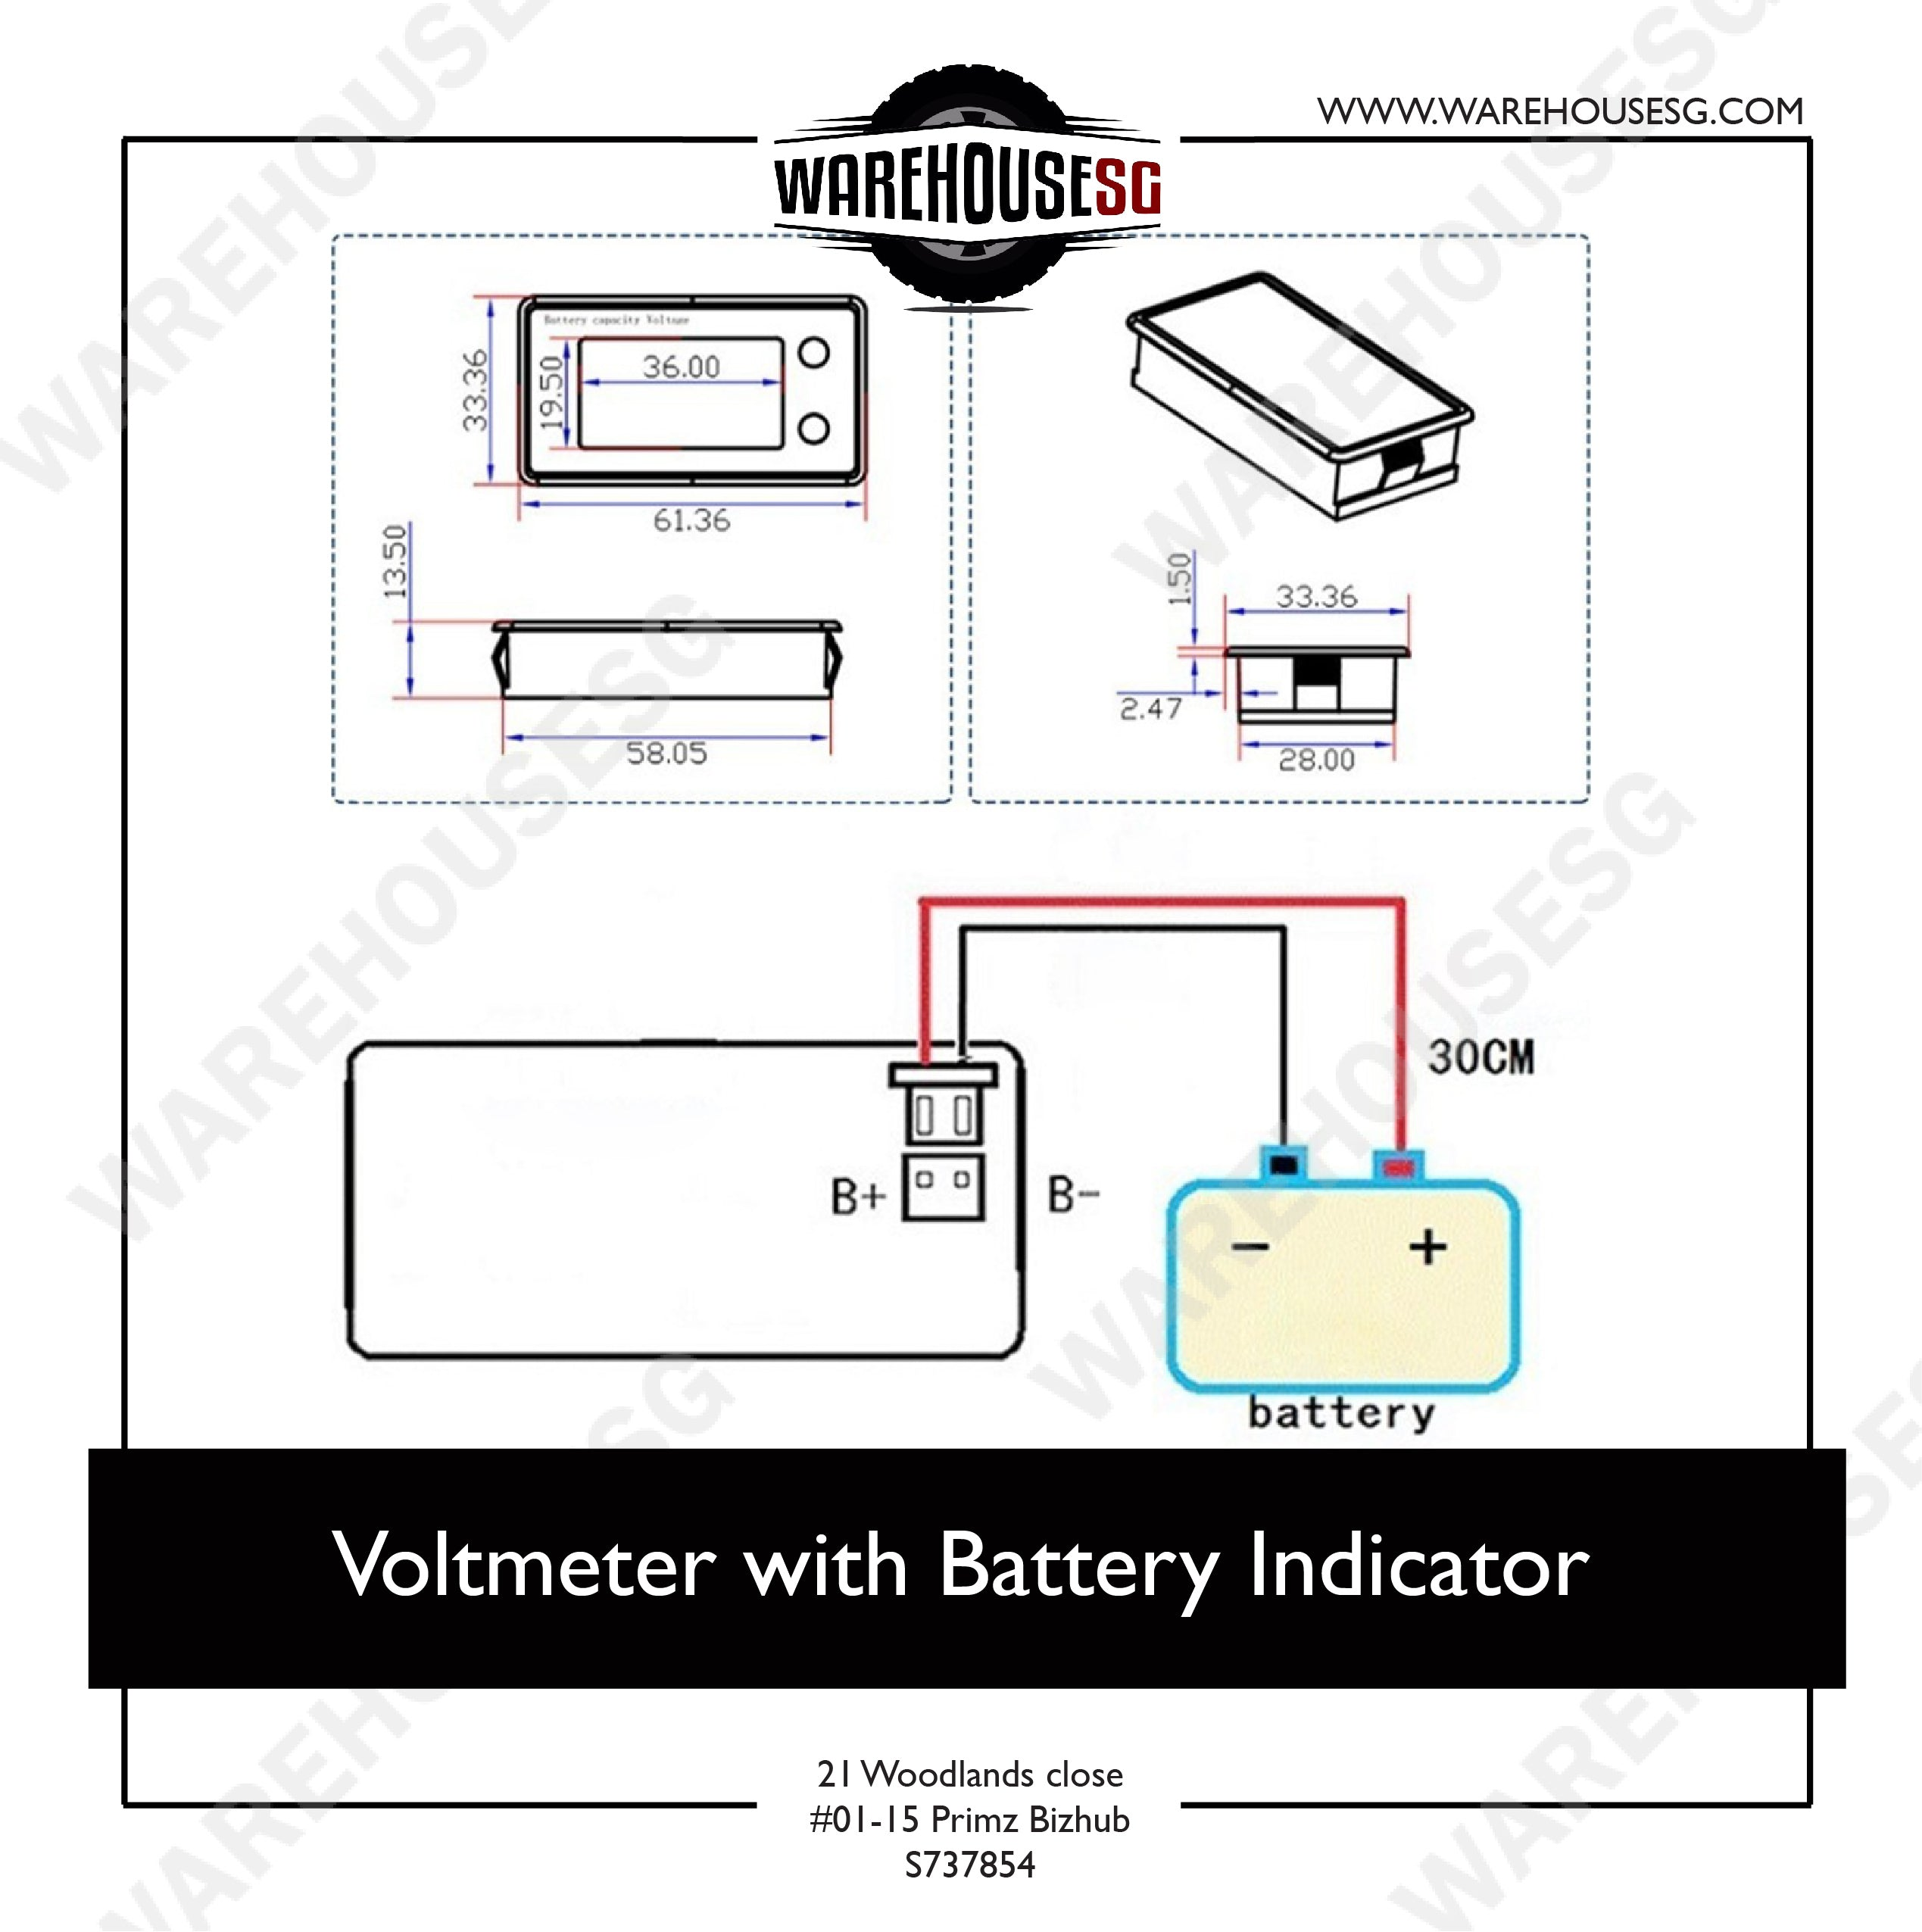 Voltmeter with Battery Indicator